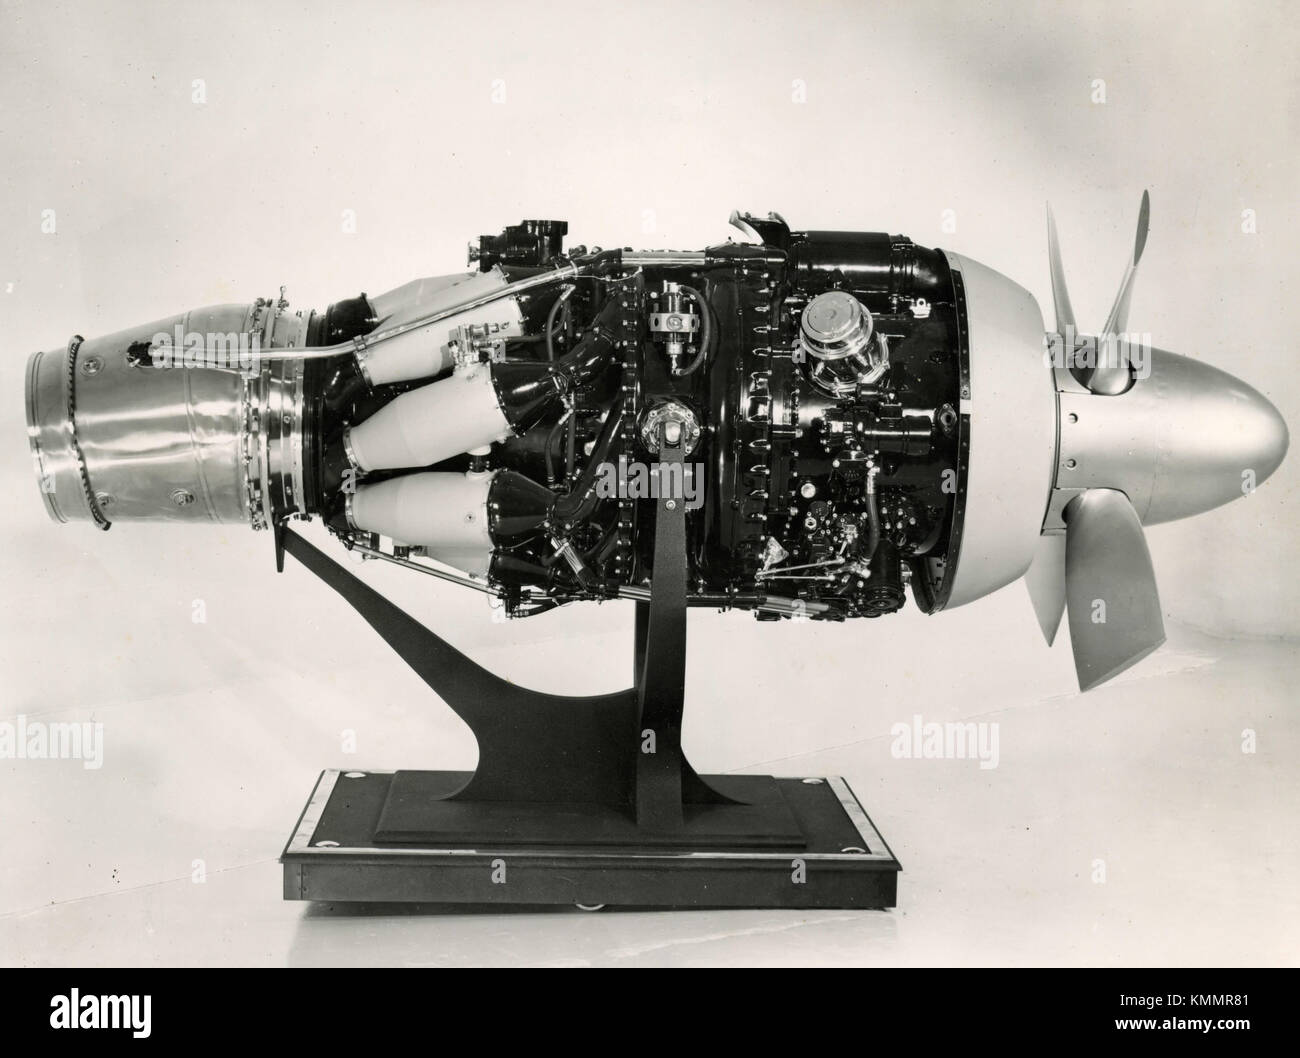 Rolls-Royce Dart turbo-prop aviation engine jet propulsion, UK 1950s - Stock Image